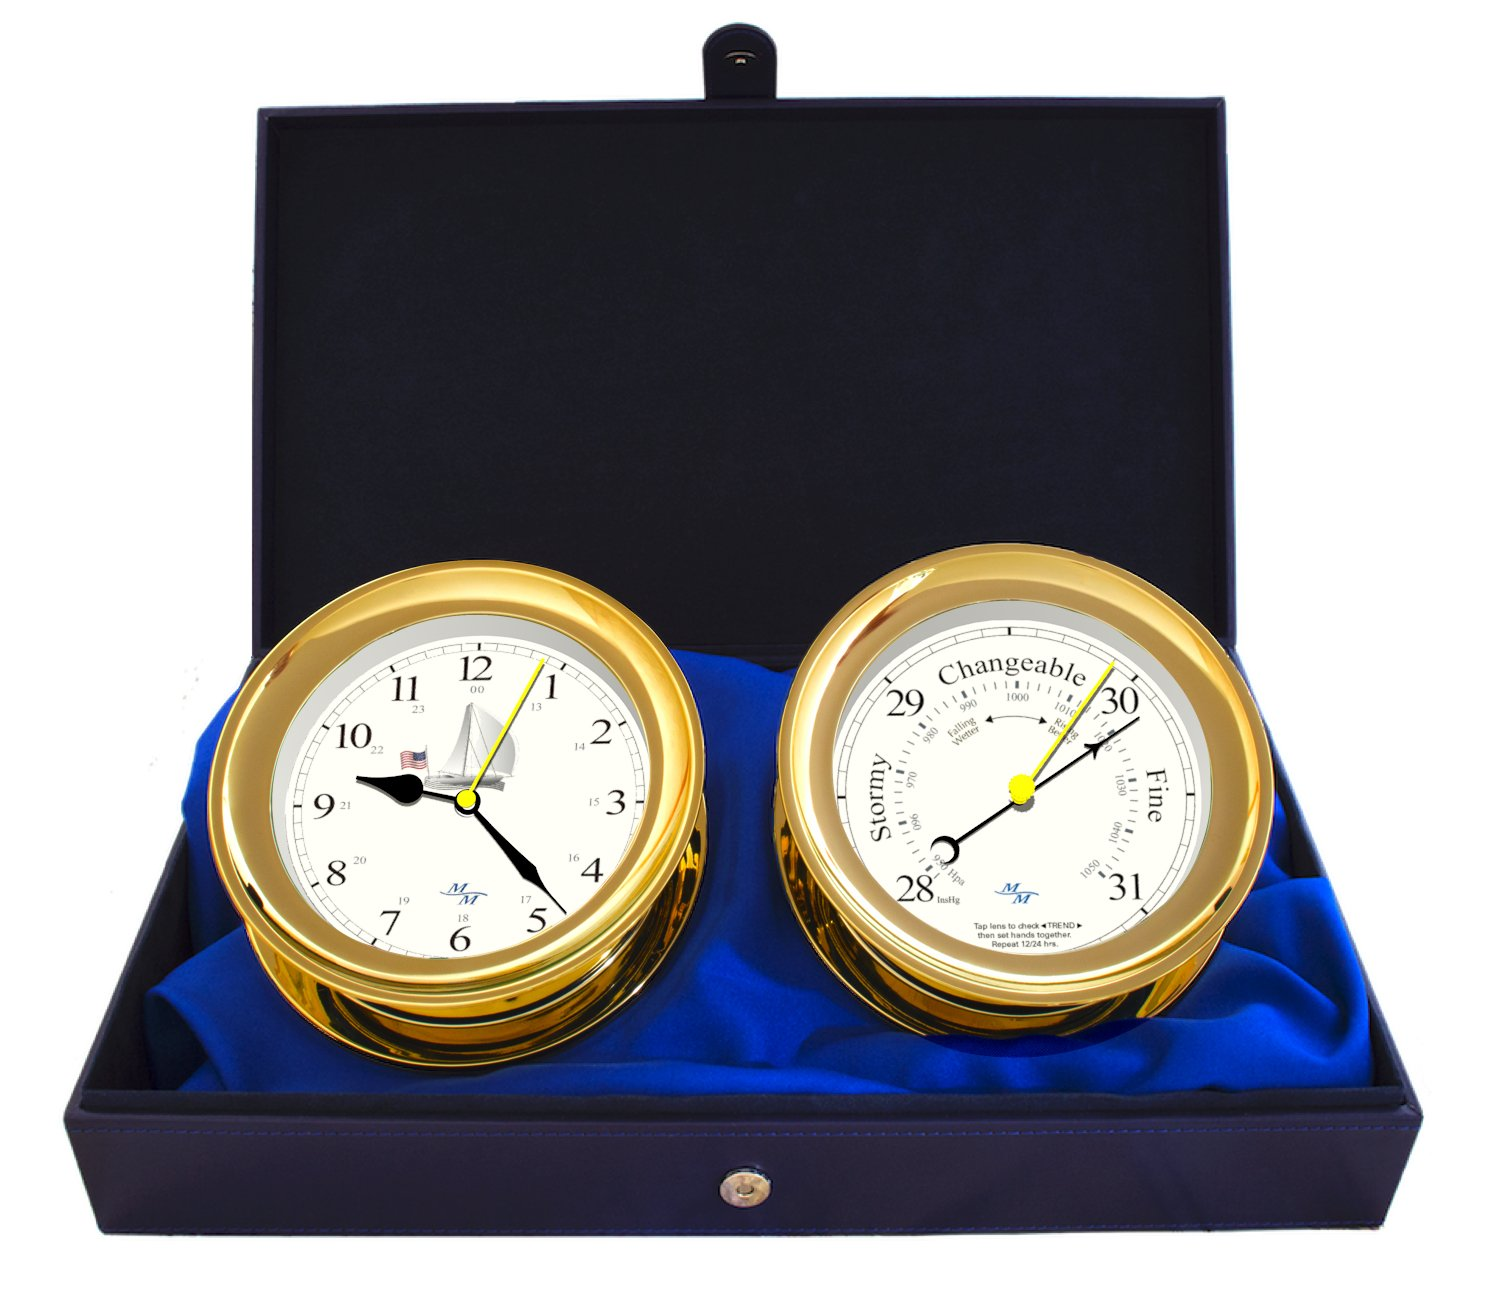 Windlass Gift Set Clock & Barometer by Master-Mariner, Gold finish, Ivory ship dial